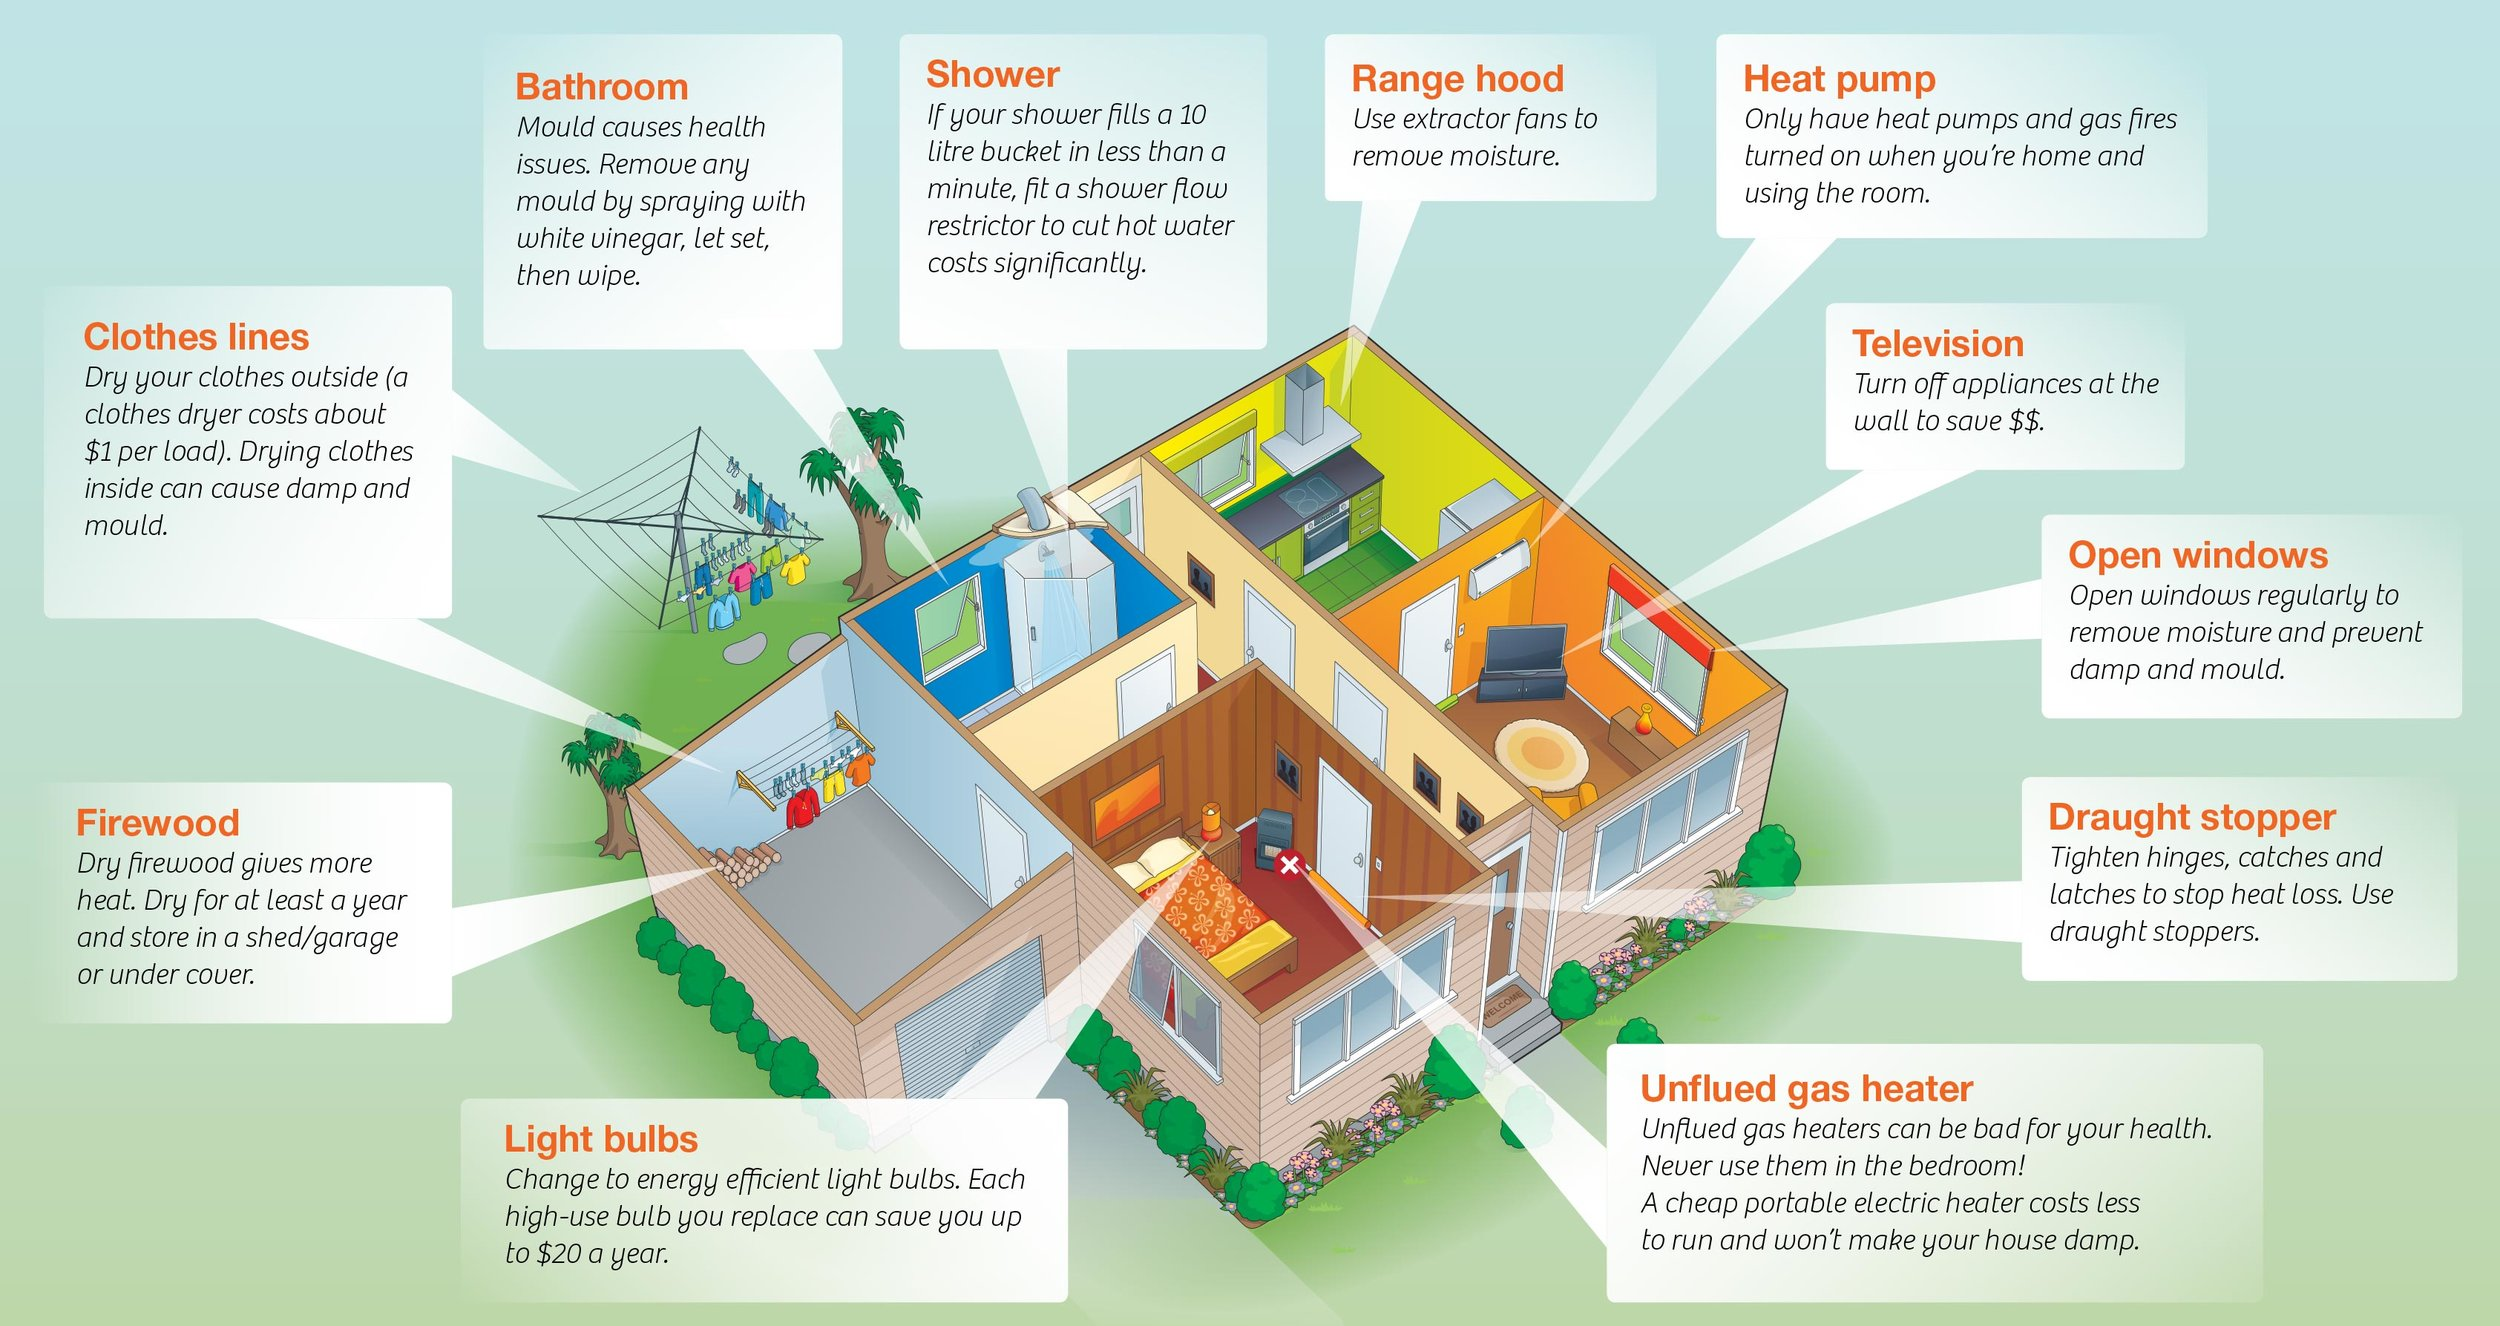 Easy ways to help keep your home warmer and drier, thanks to EECA Energywise.